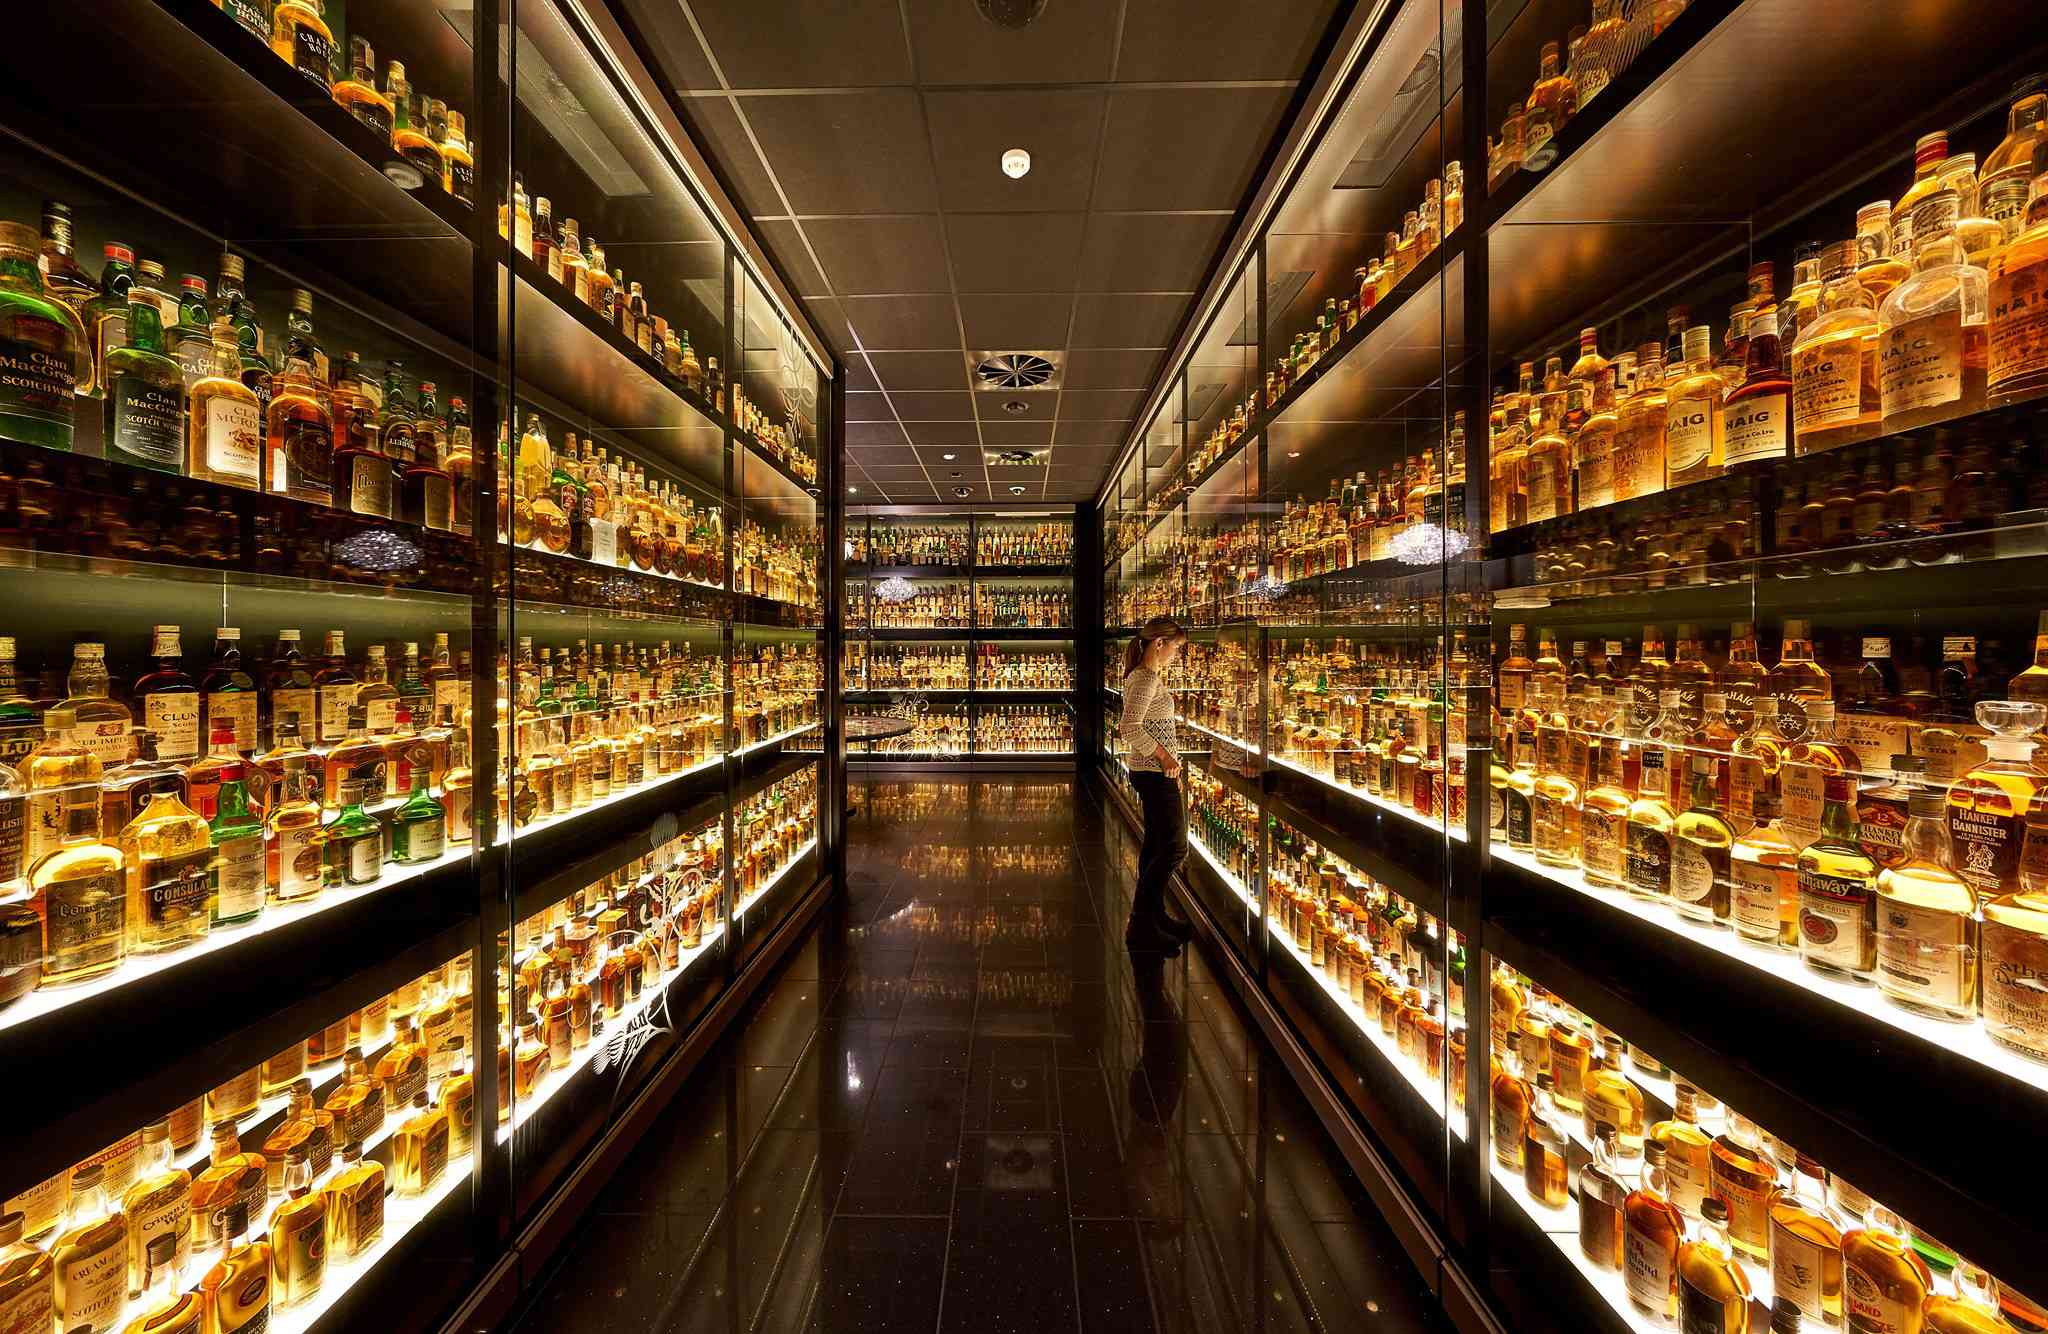 a dark room with walls lined with illuminated shelves of scotch whisky